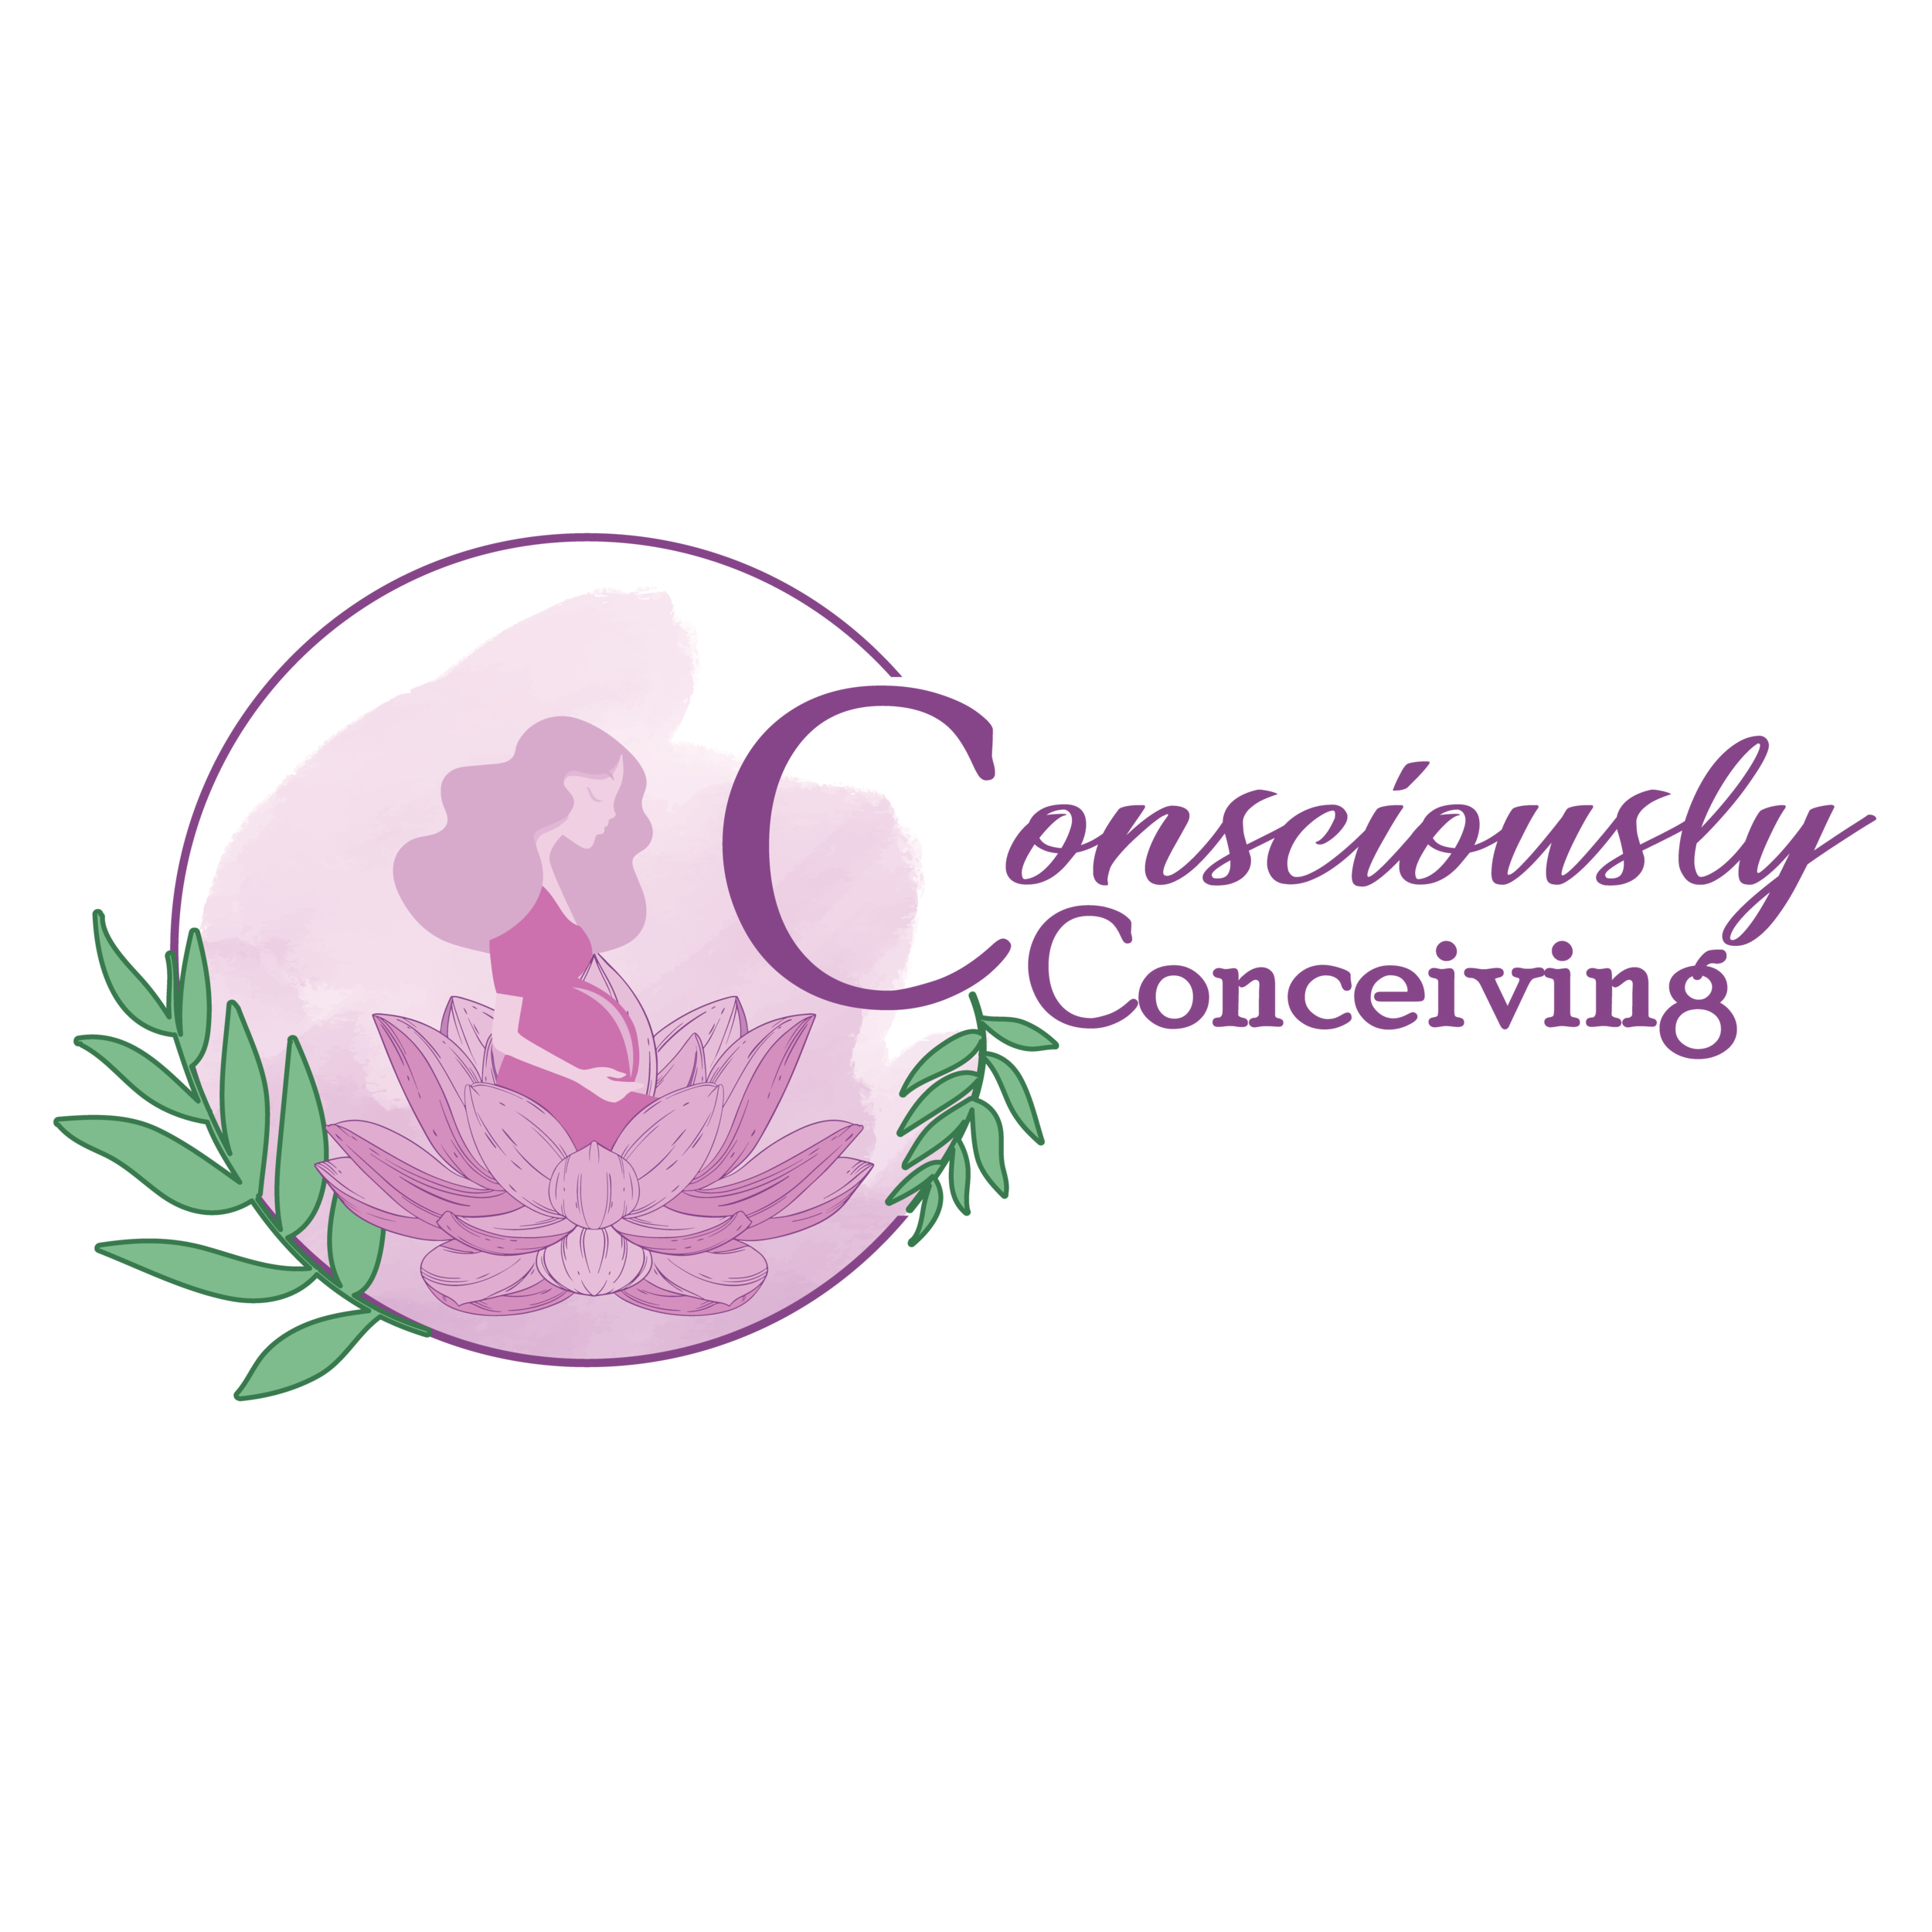 Consciously-Conceiving-LOGO-LIGHTER-2.png